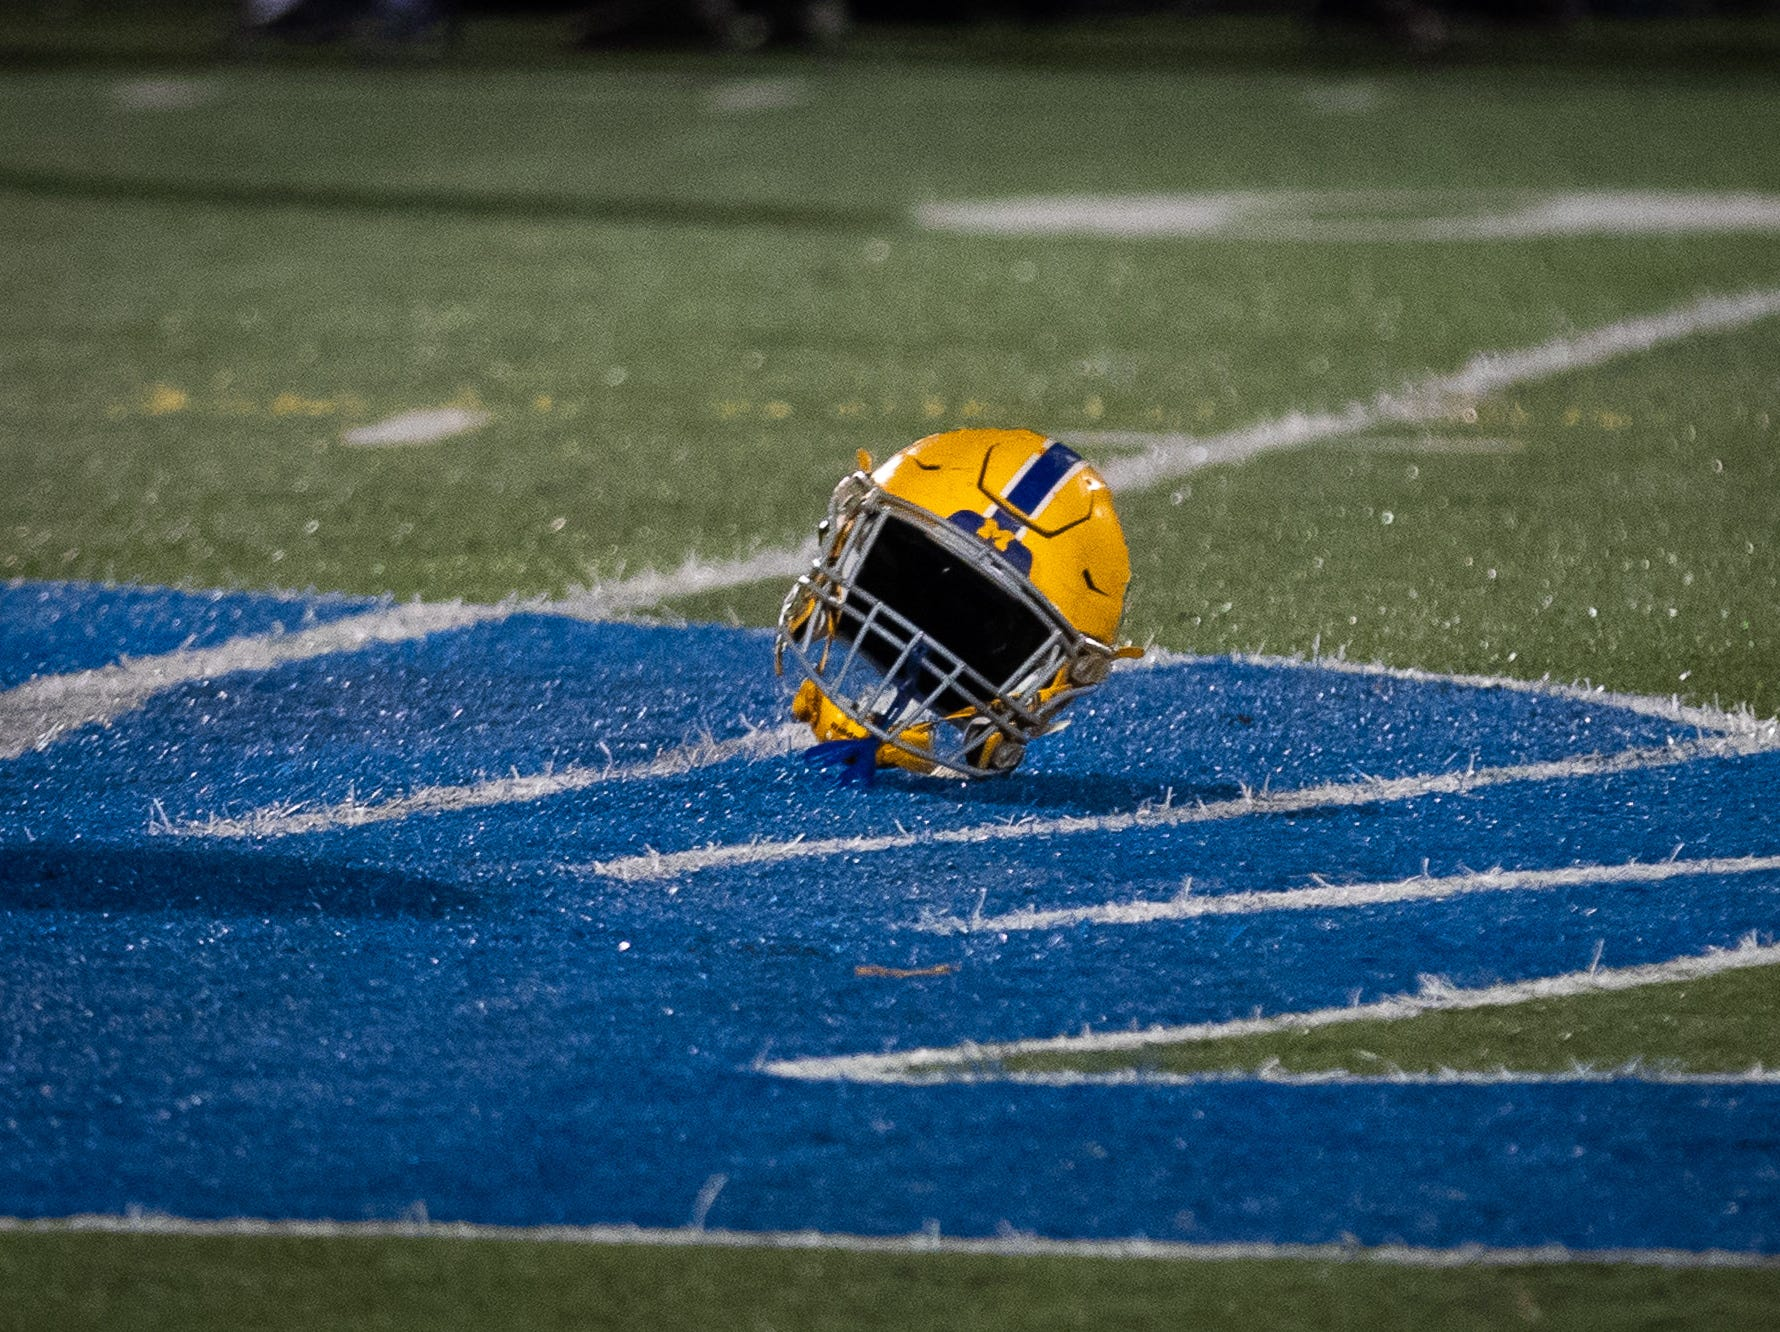 The lost helmet of Middletown's Cole Senior (62) sits on the field during the first half of the District 3 Class 3A championship game between Bermudian Springs and Middletown, Saturday, Nov. 17, 2018, at Cedar Crest High School. Middletown leads Bermudian Springs 28-6 at the half.